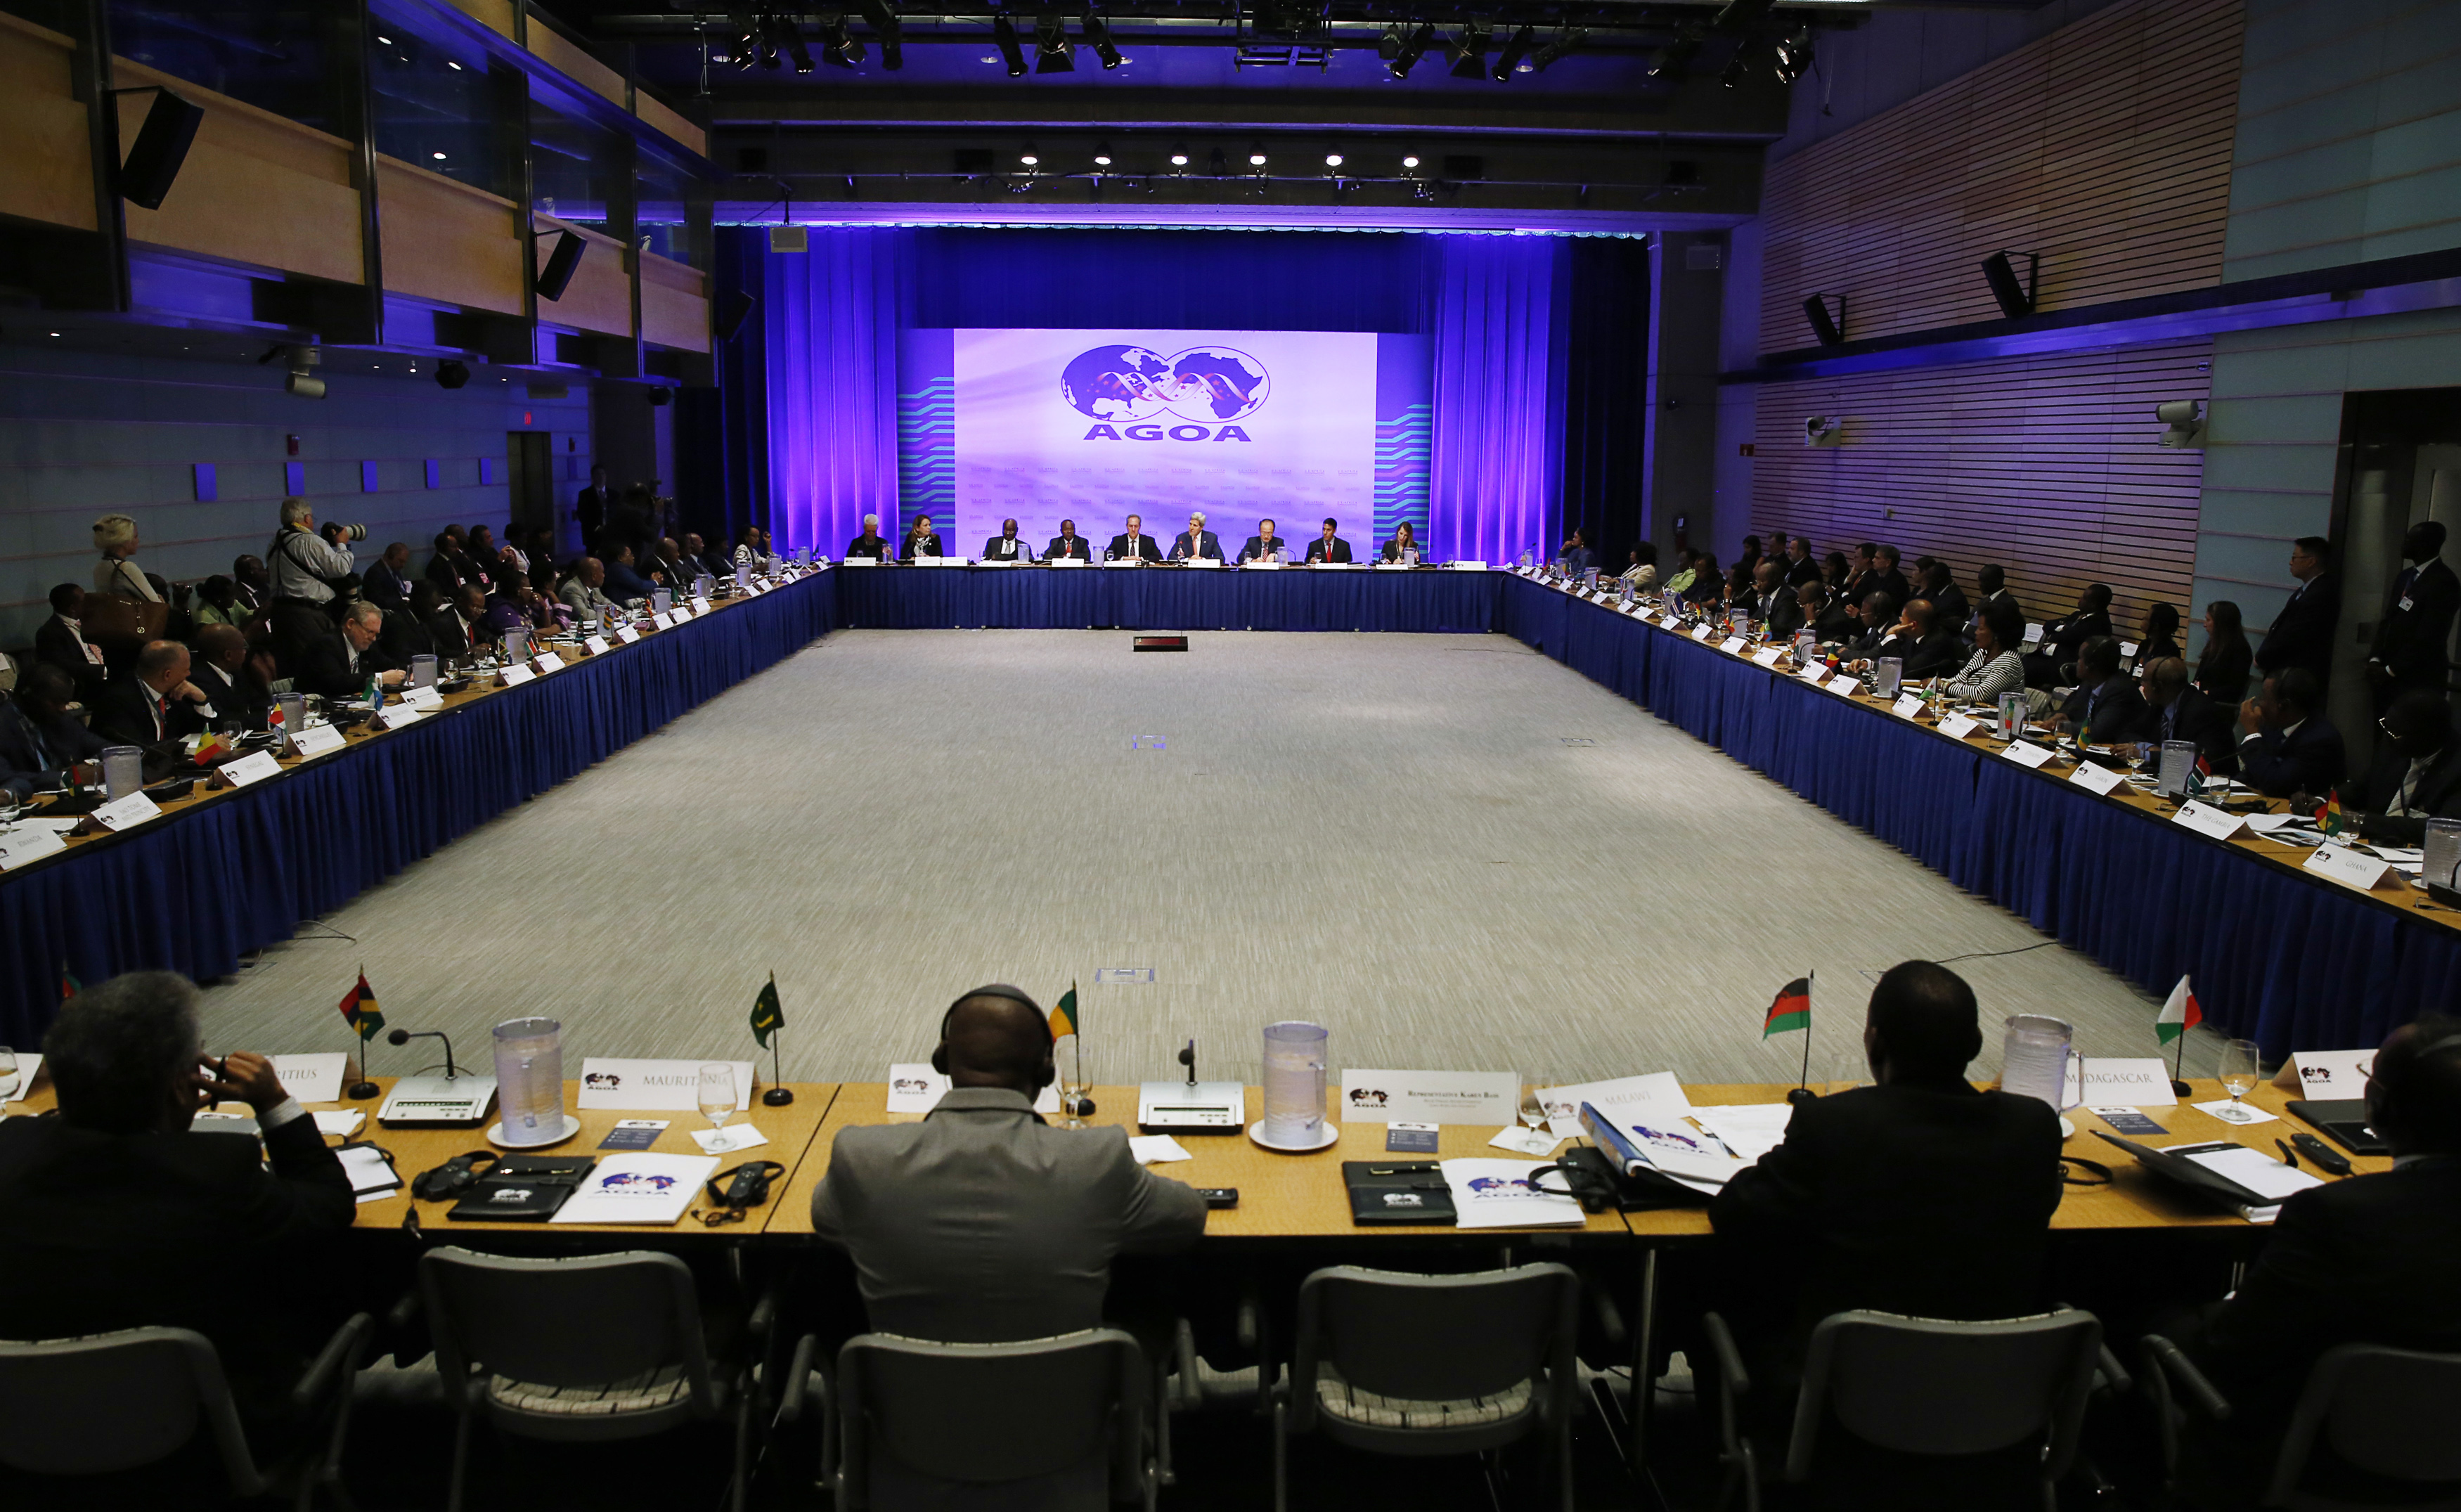 Representatives from various African nations gather at the opening session at the AGOA Forum during the US-Africa Leaders Summit in Washington August 4, 2014.